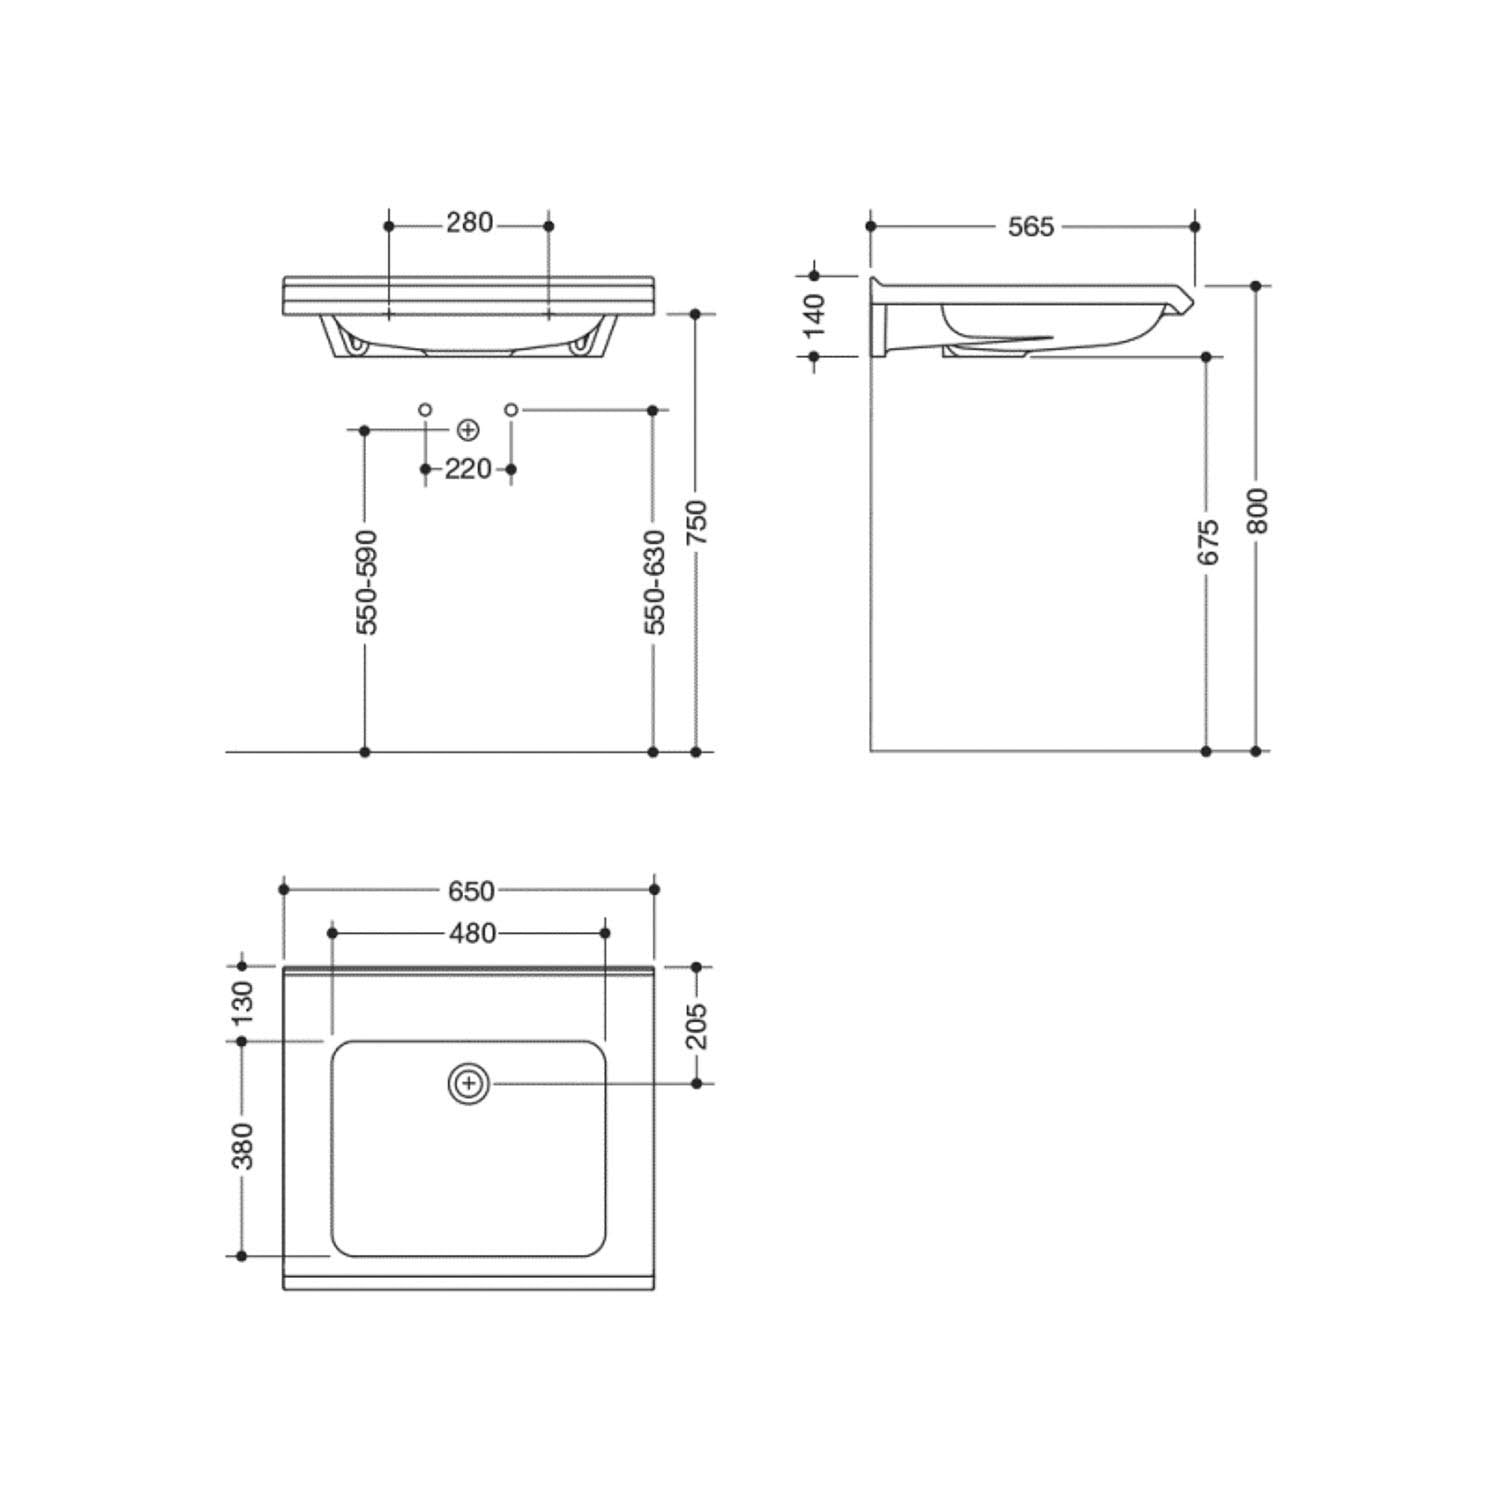 650mm SurfaceHold Wall Hung Basin with no tap hole dimensional drawing